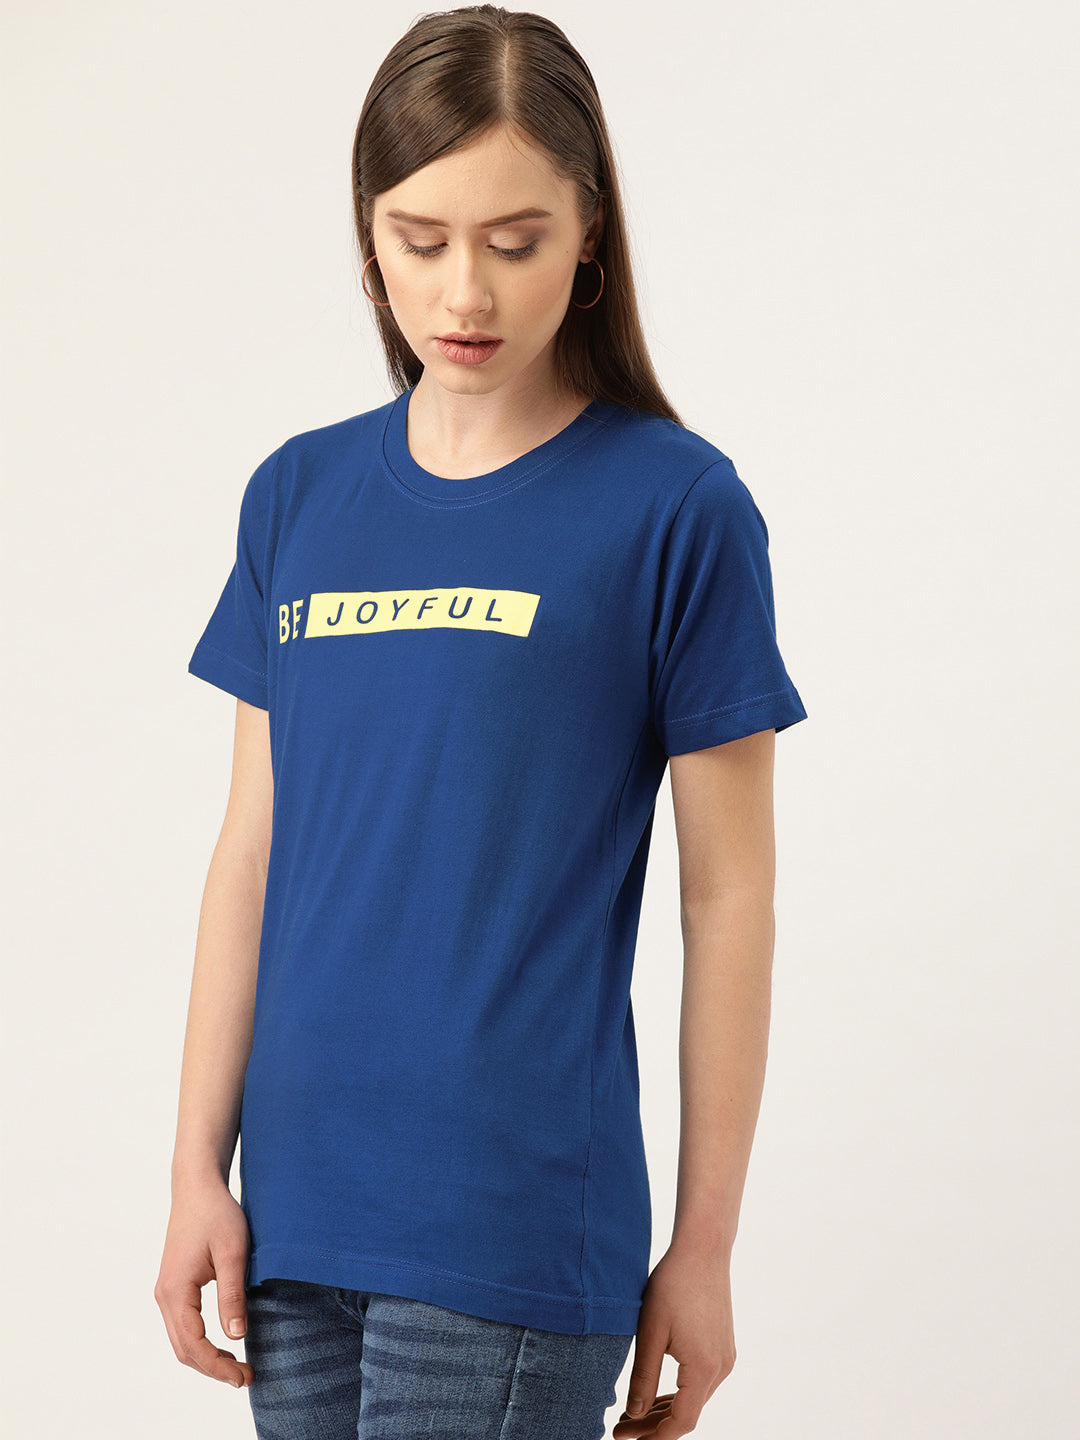 Be Joyful Blue T-Shirt